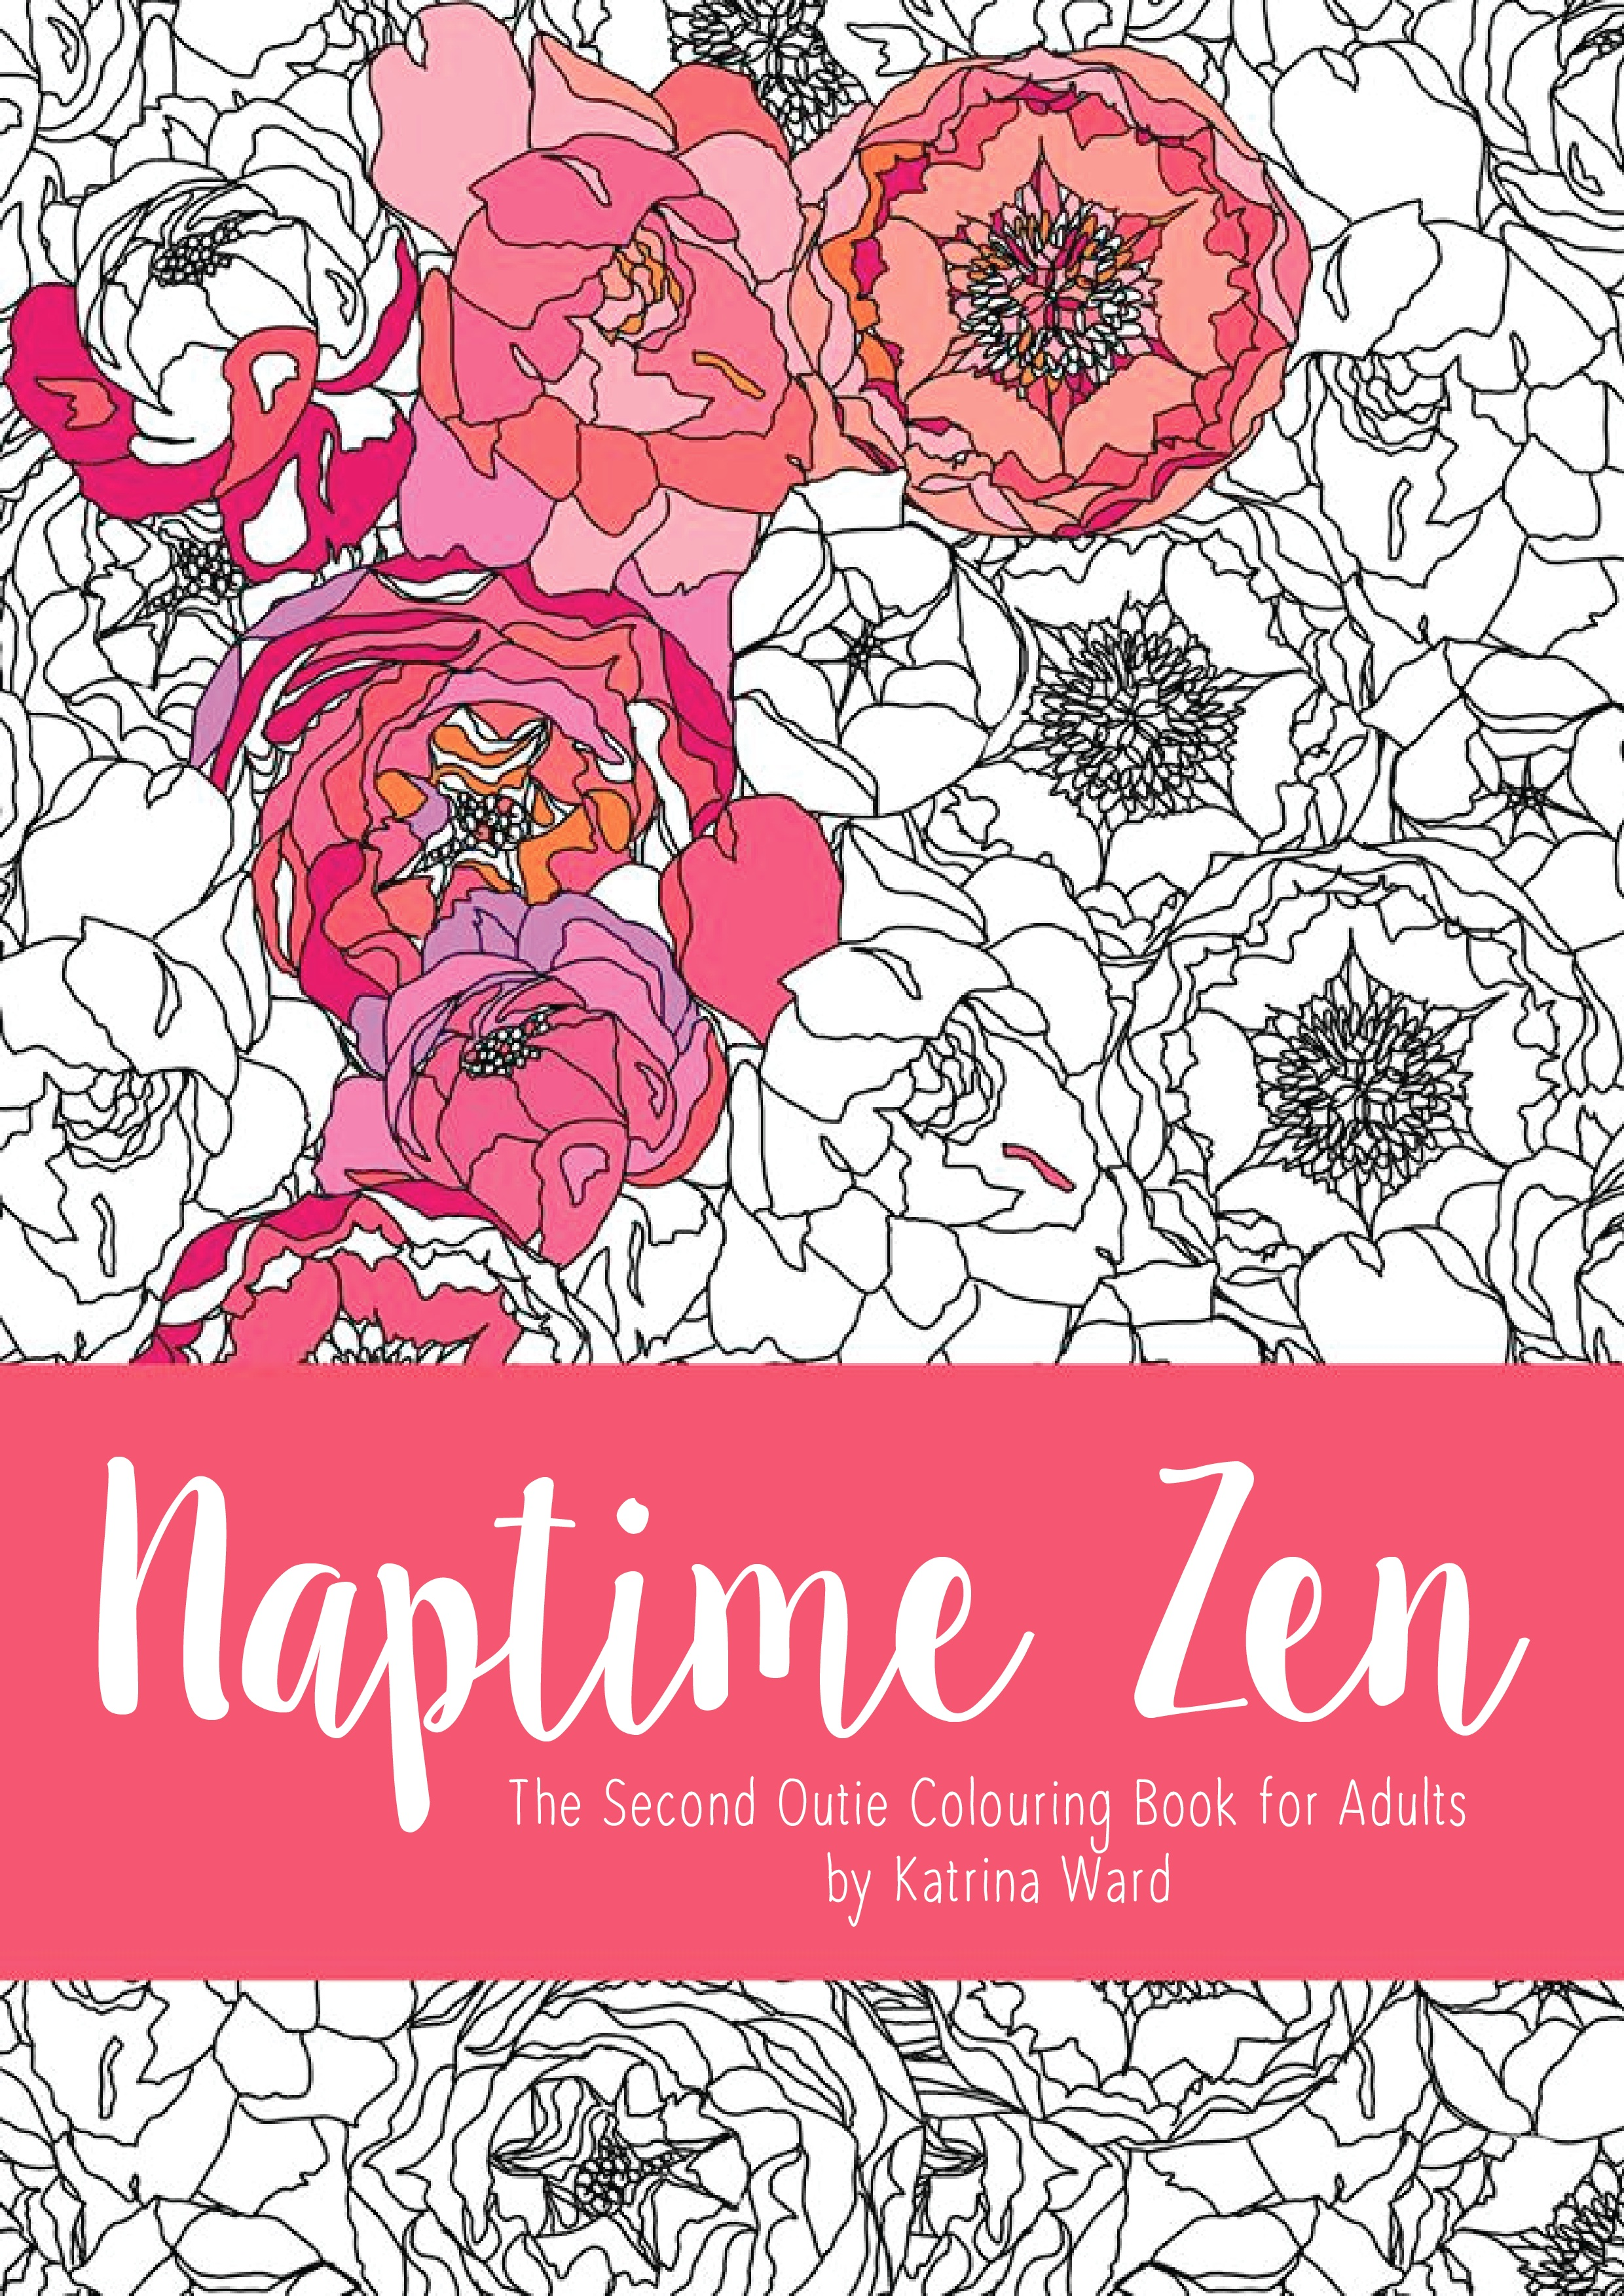 Happily, my first colouring book was nicely put together and I was able to release a second one with added loveliness like nicer paper, perforations, singe-sided printing and a thicker/glossier cover.